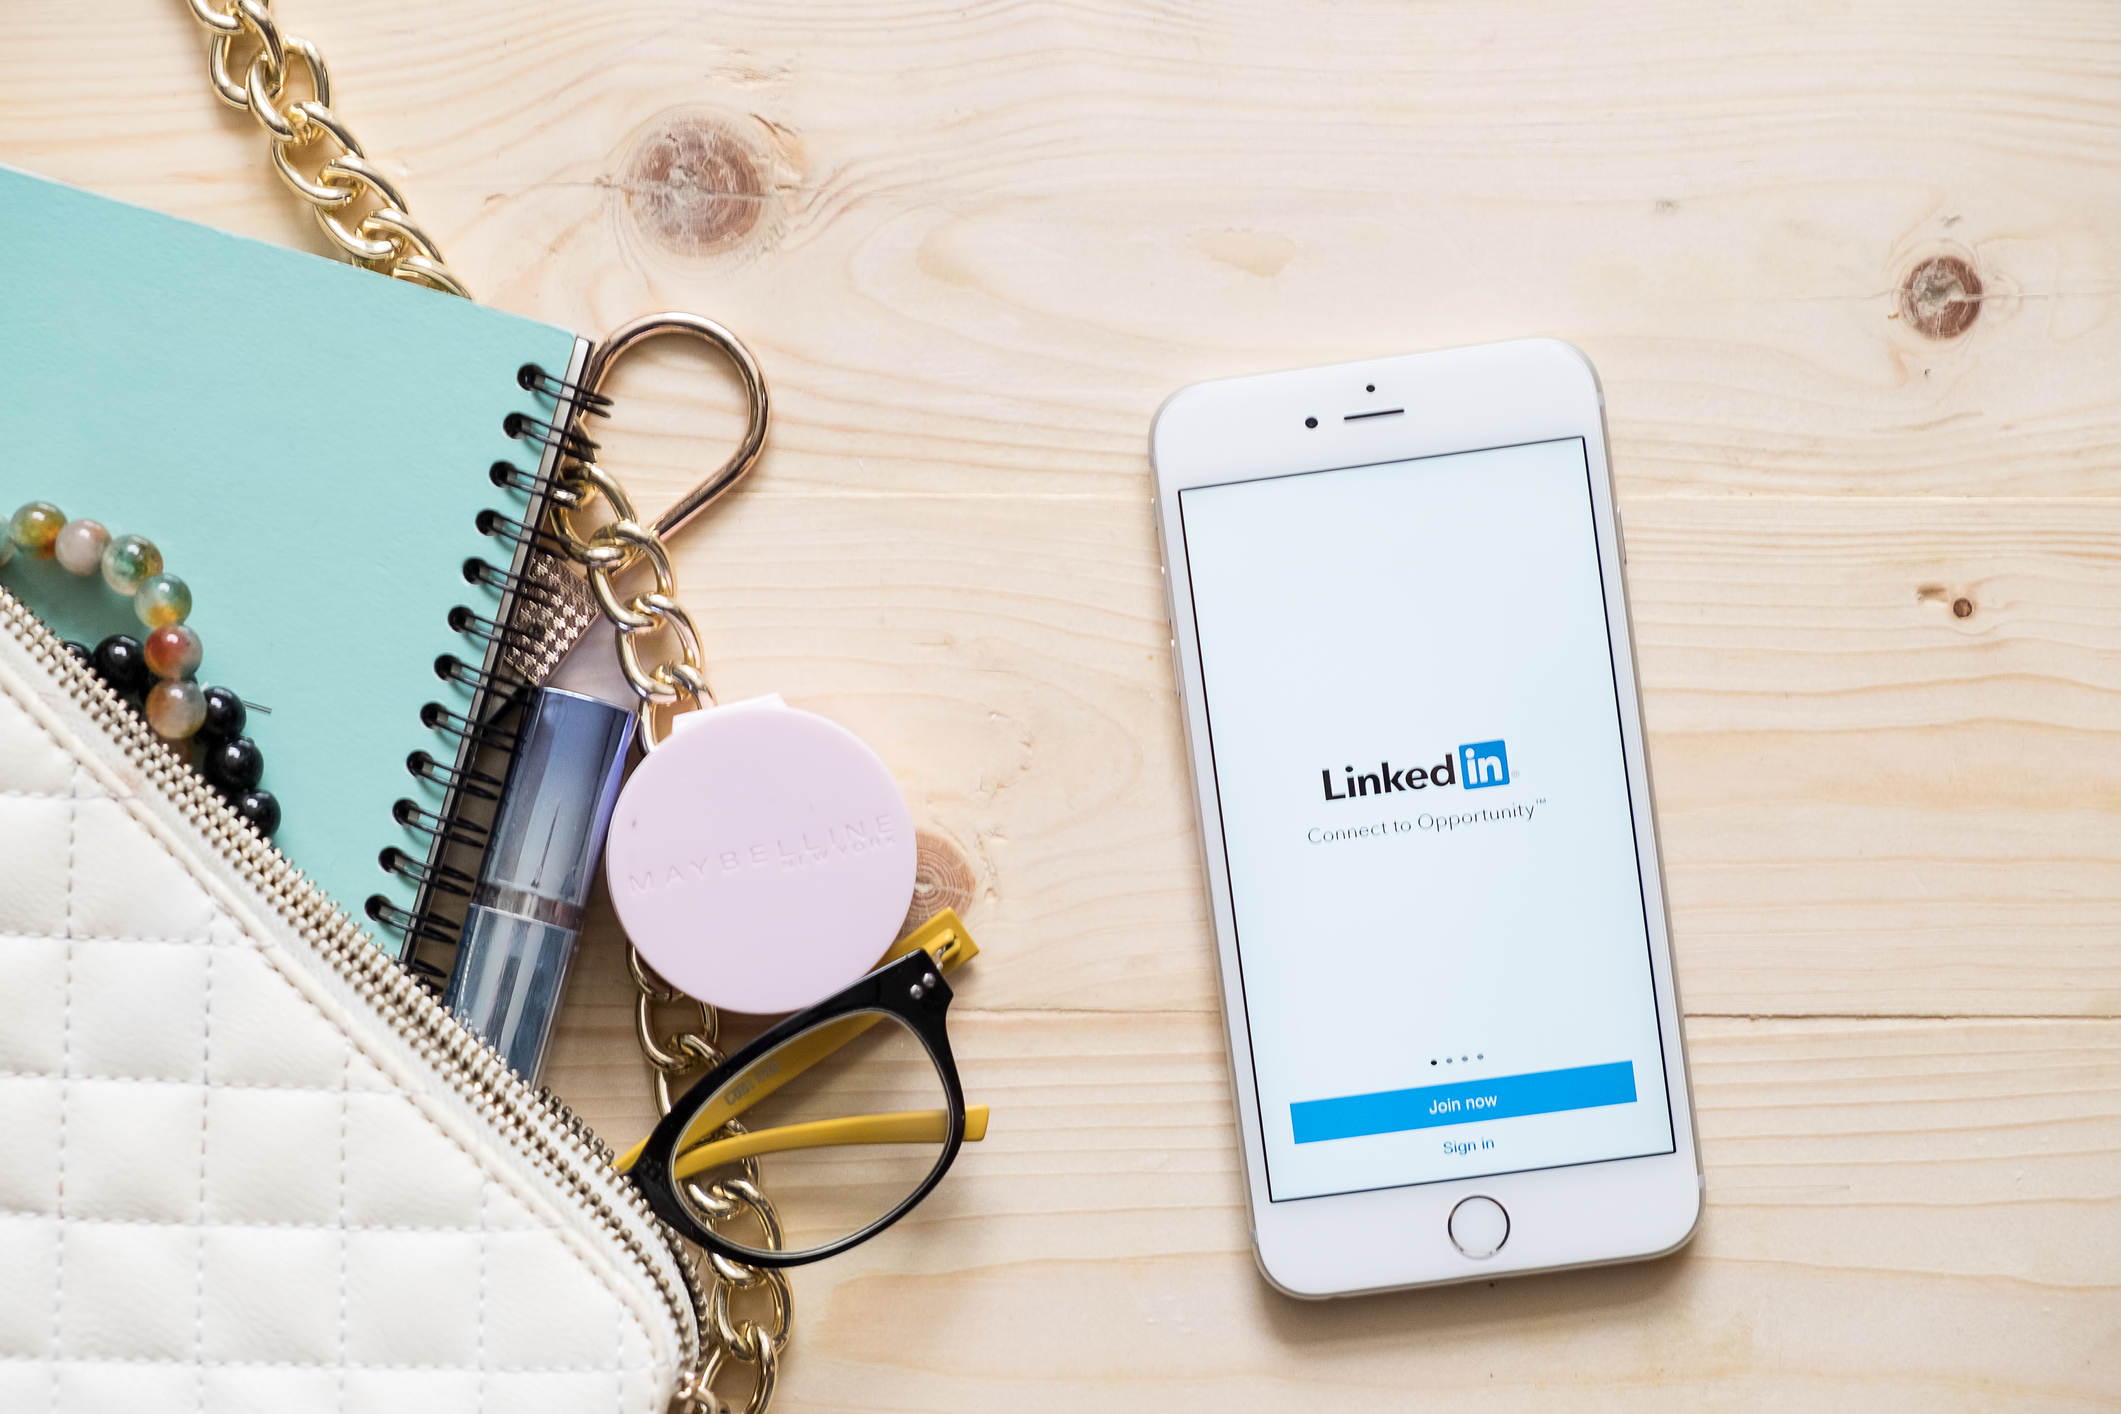 Enhance Your LinkedIn Profile With Recommendations